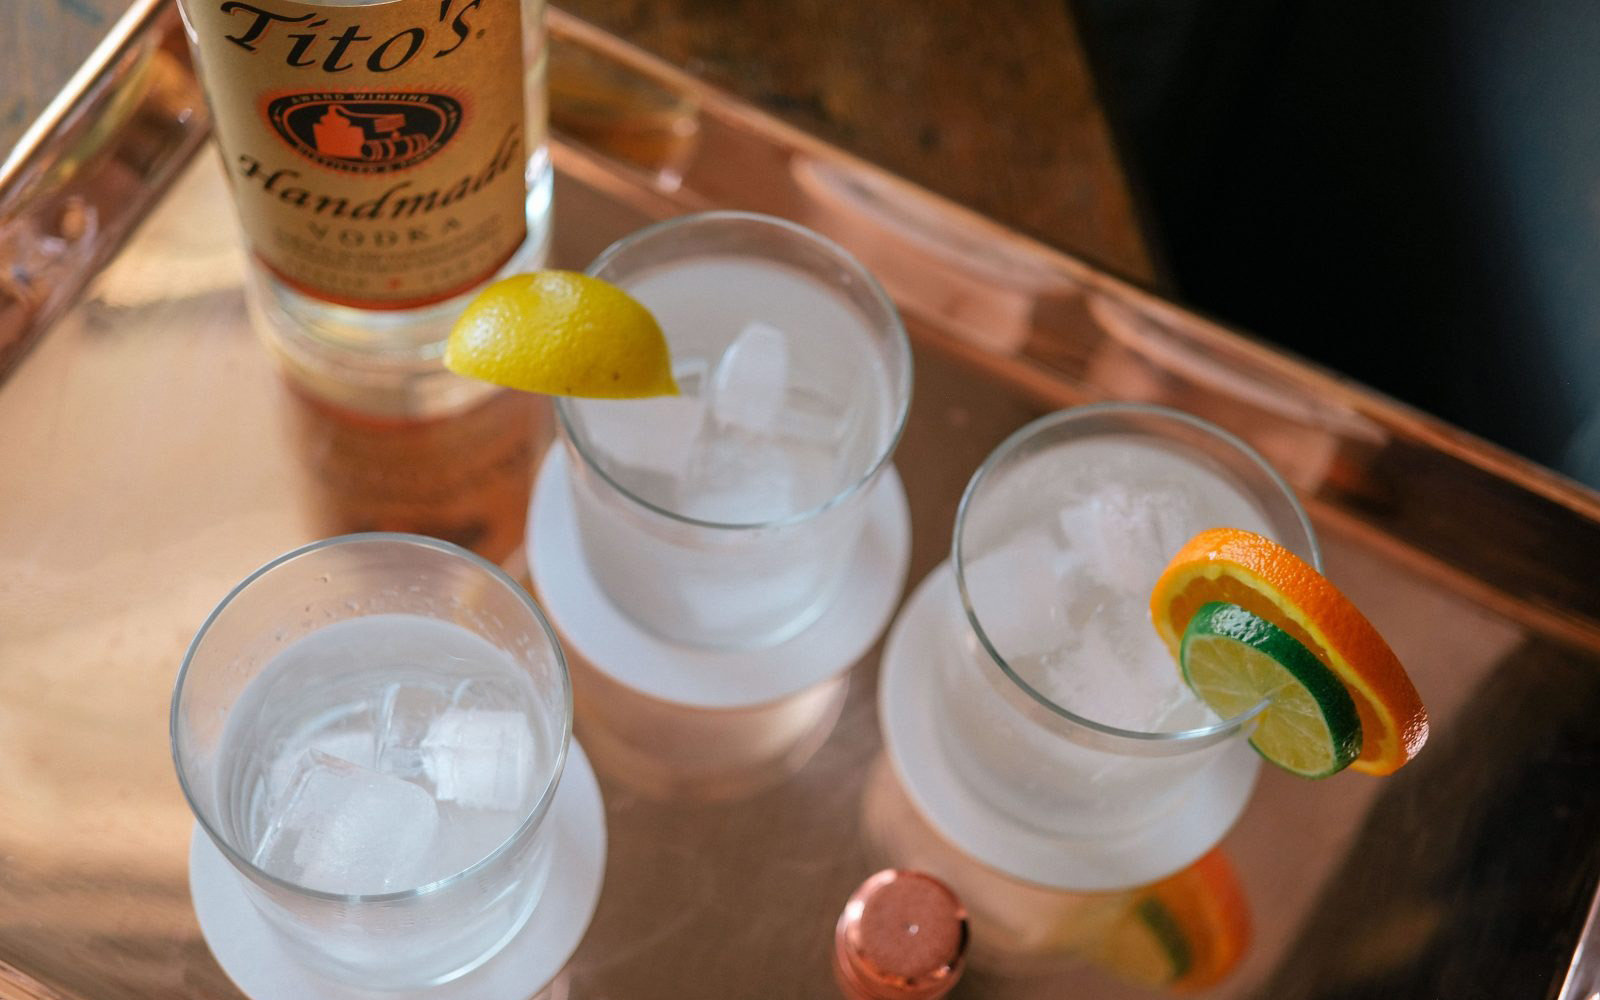 why titos vodka good for dieting?